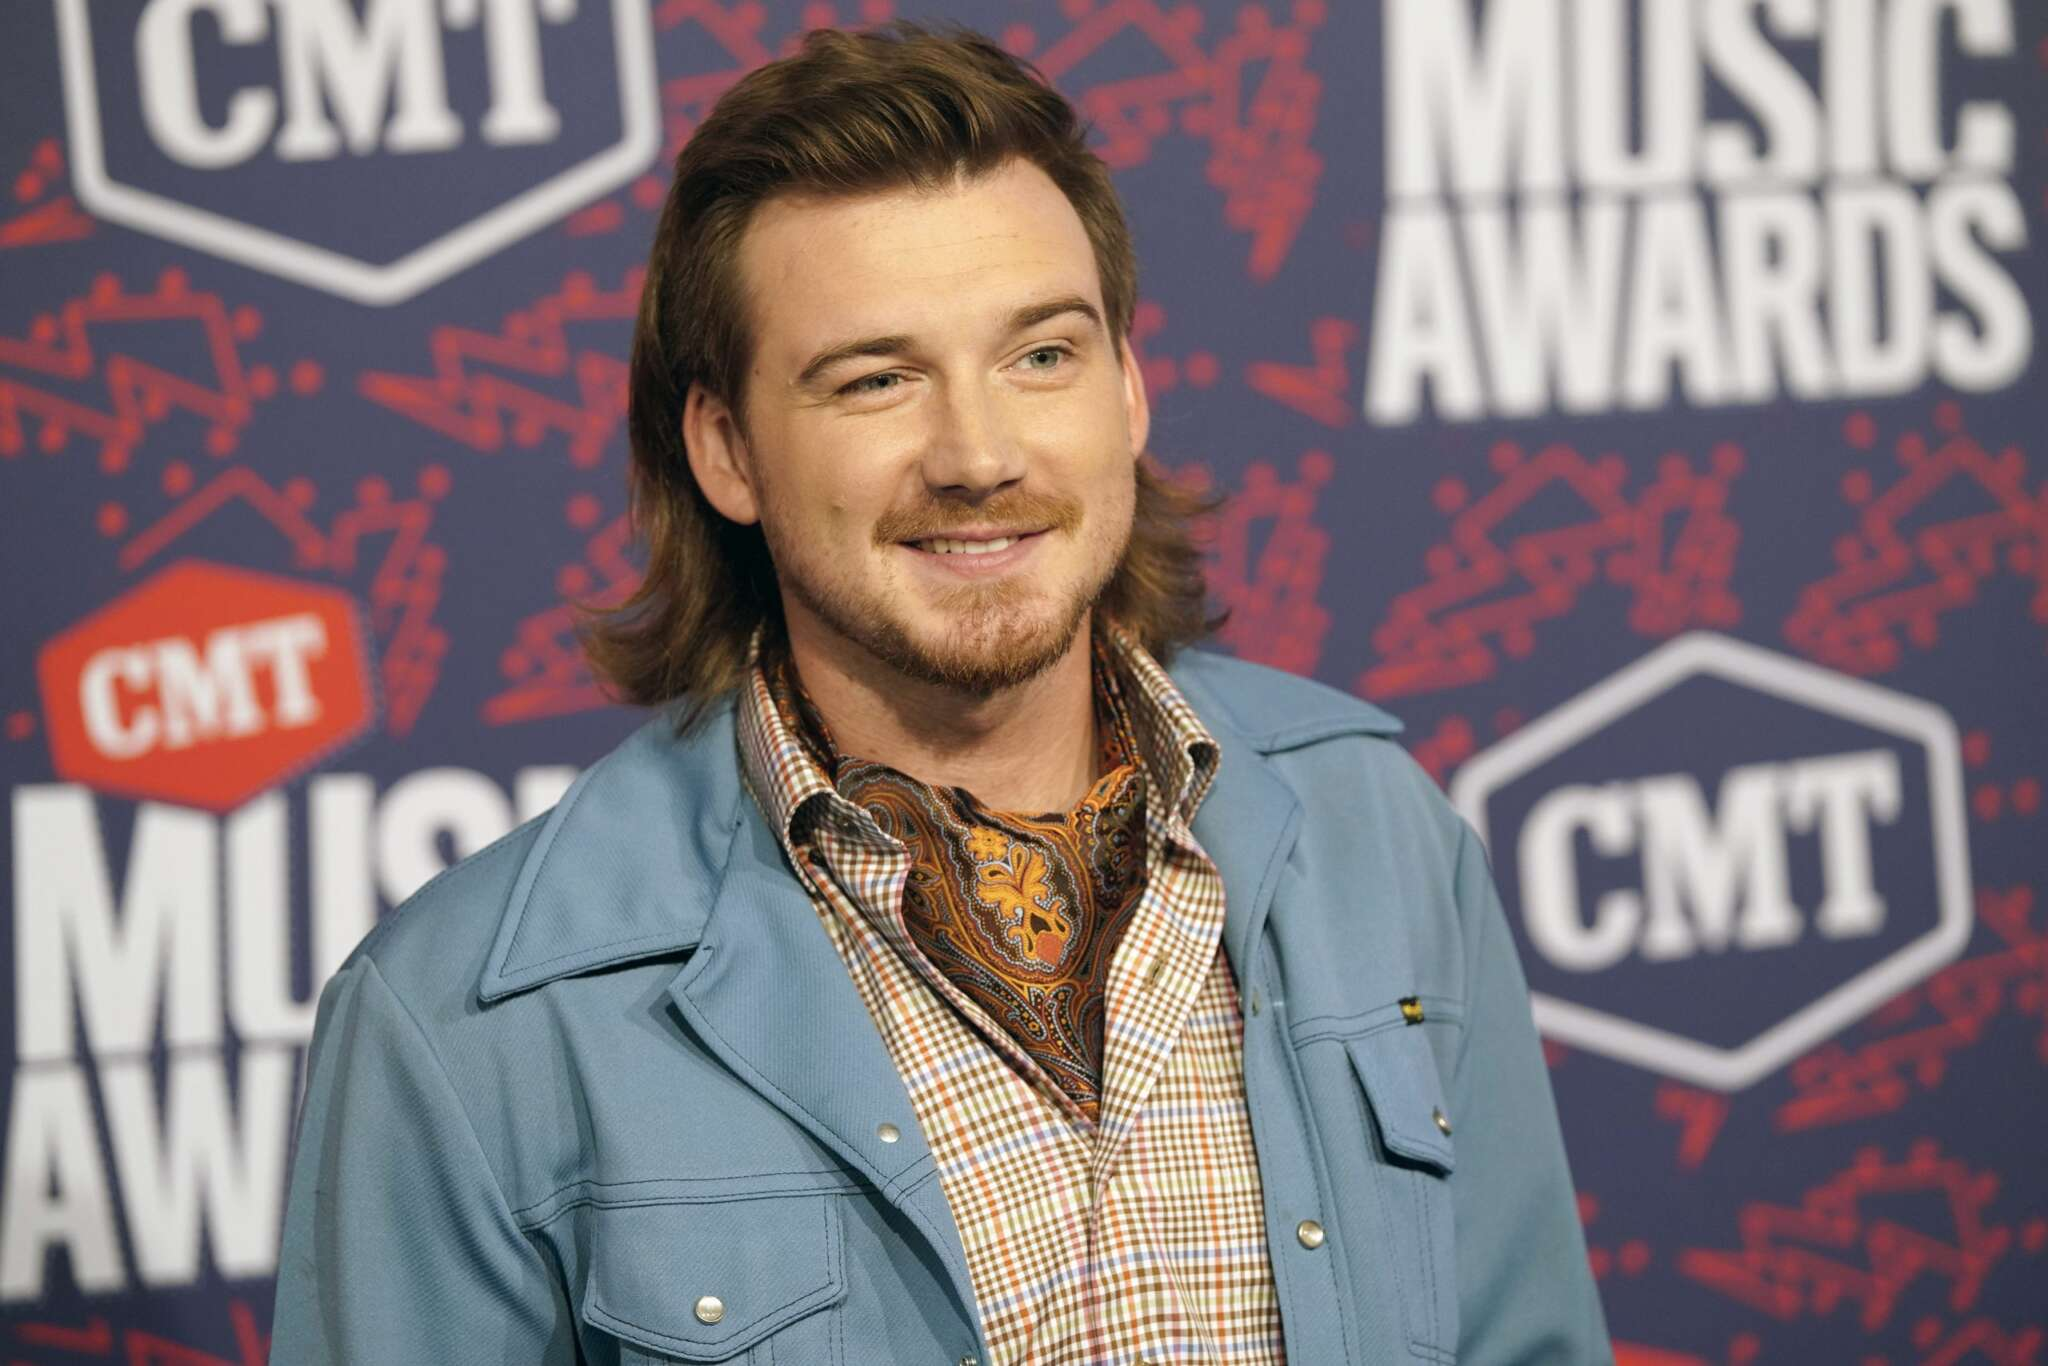 Morgan Wallen Caught Saying The N-Word On Video — Peers Say This Isn't His First Time Using The Word As He Is Pulled From Radio